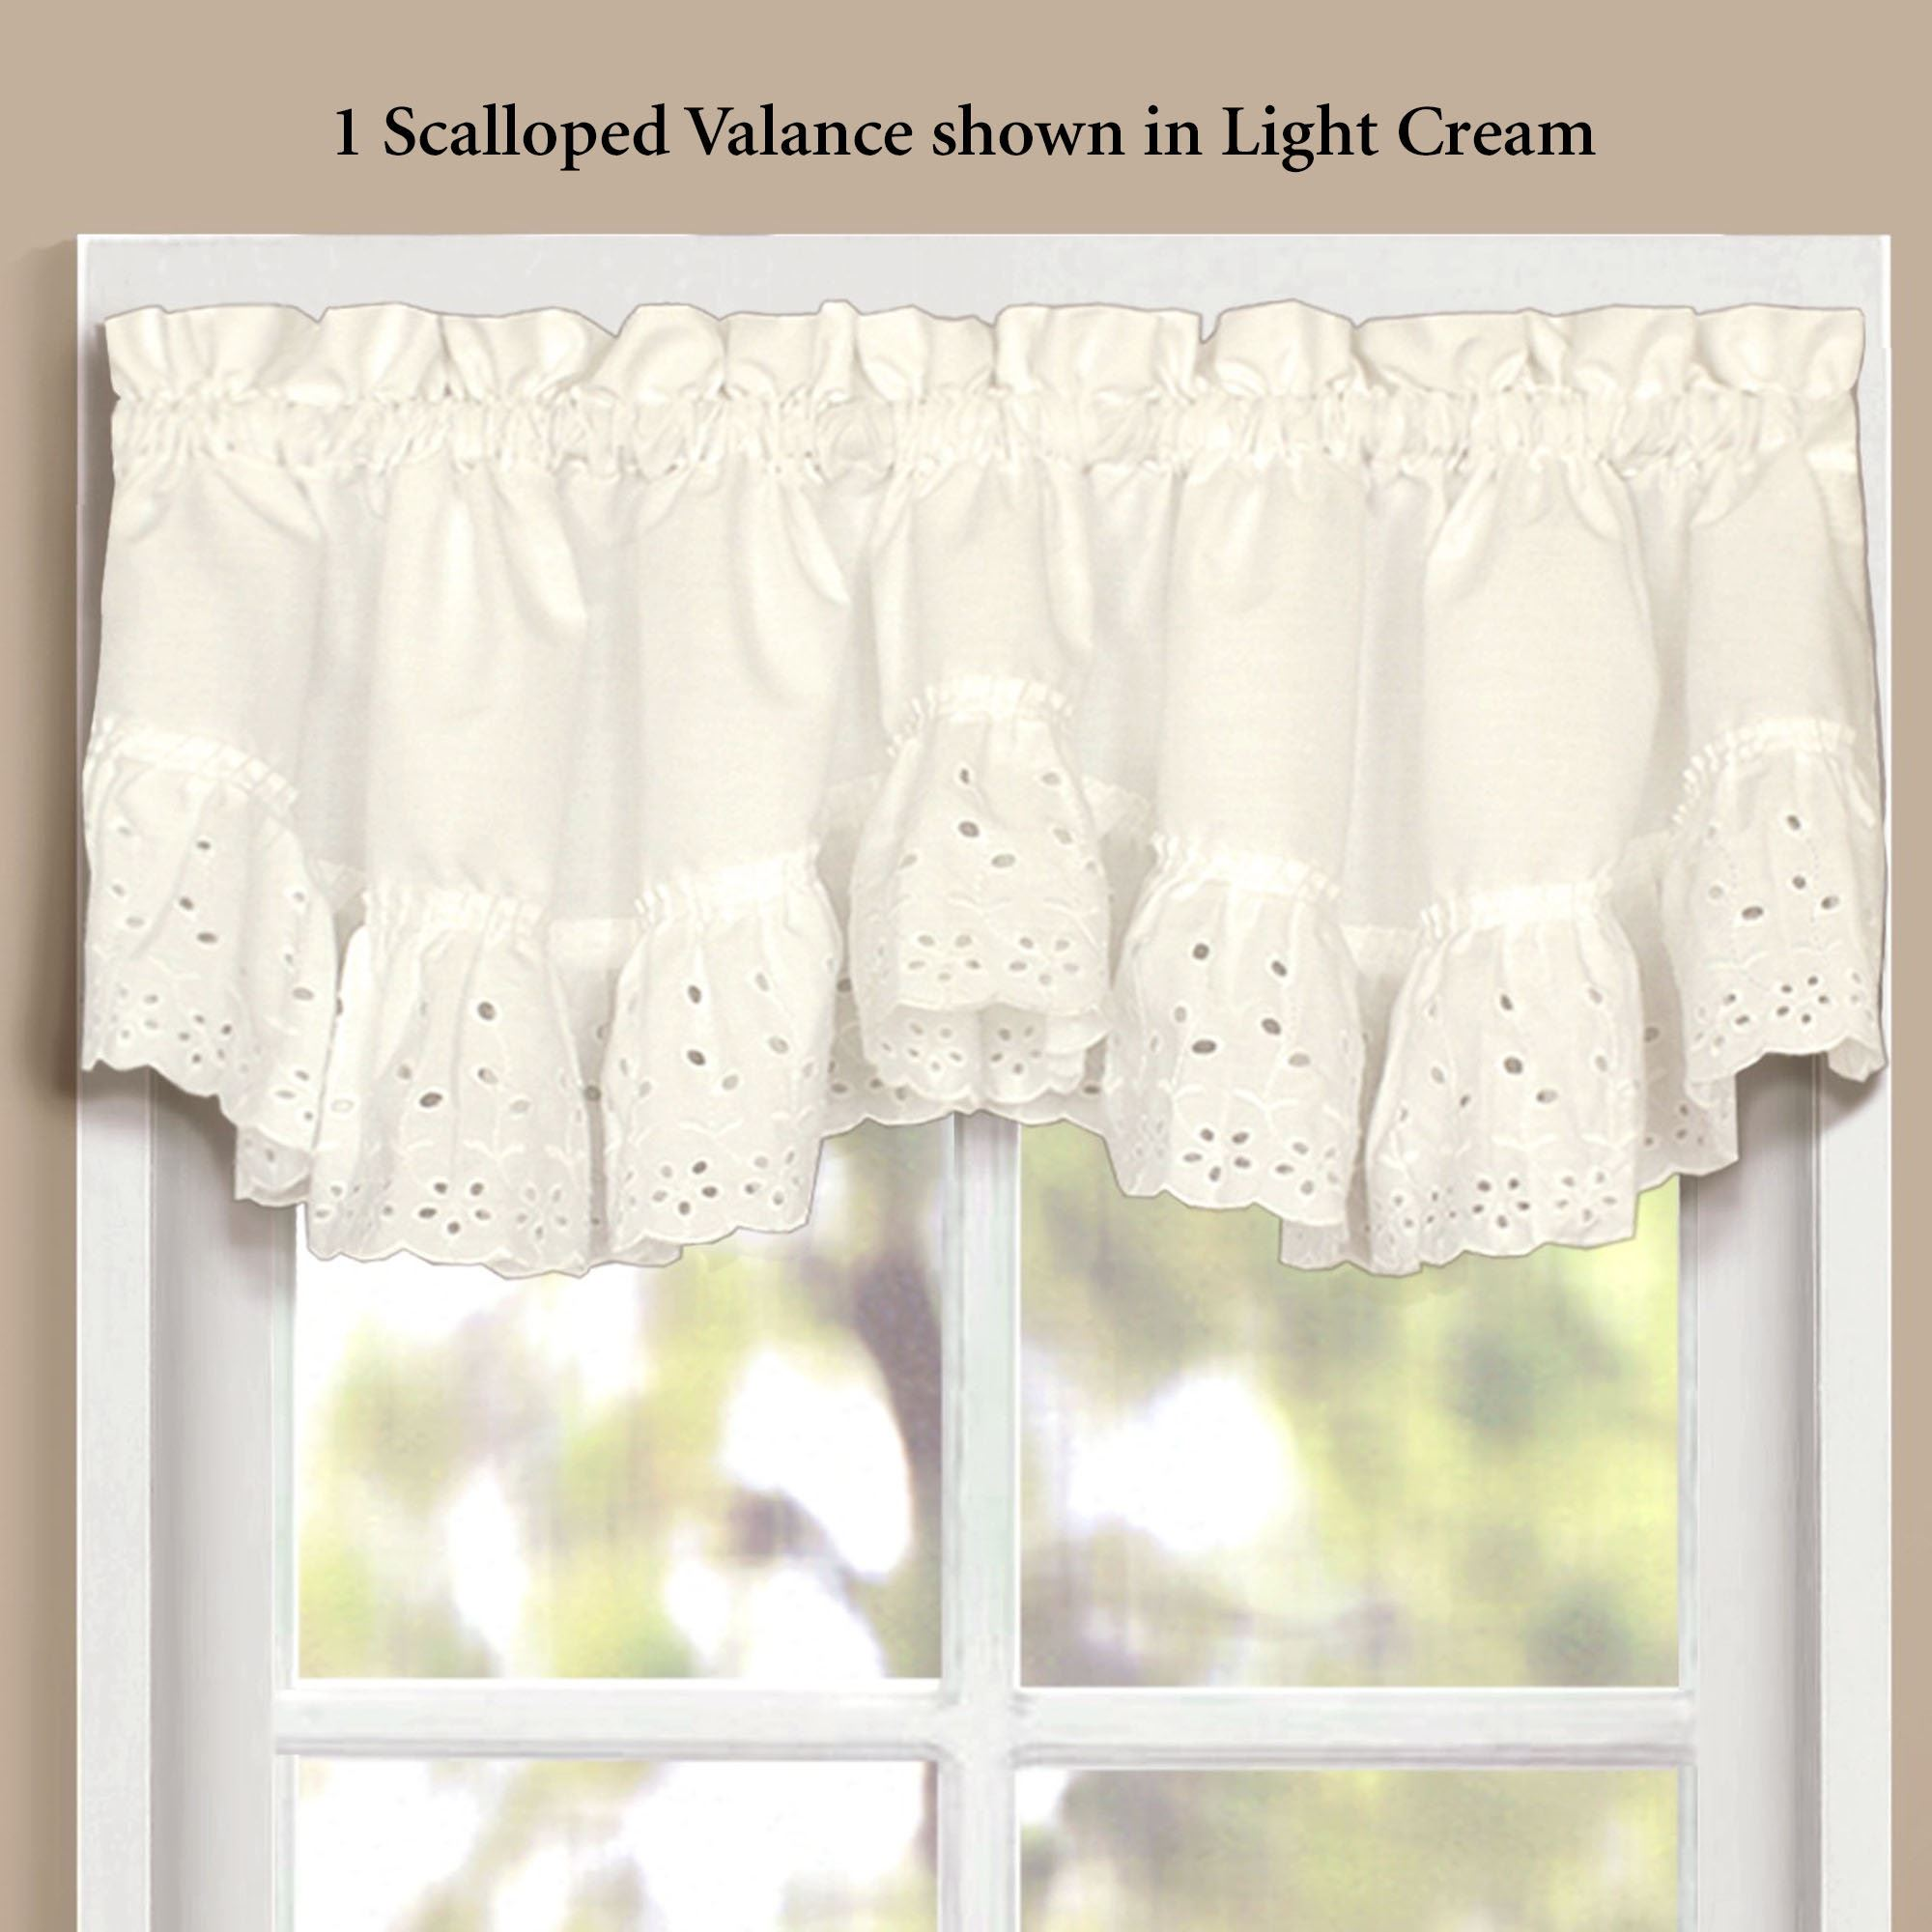 Vienna Ruffled Eyelet Scalloped Window Valance